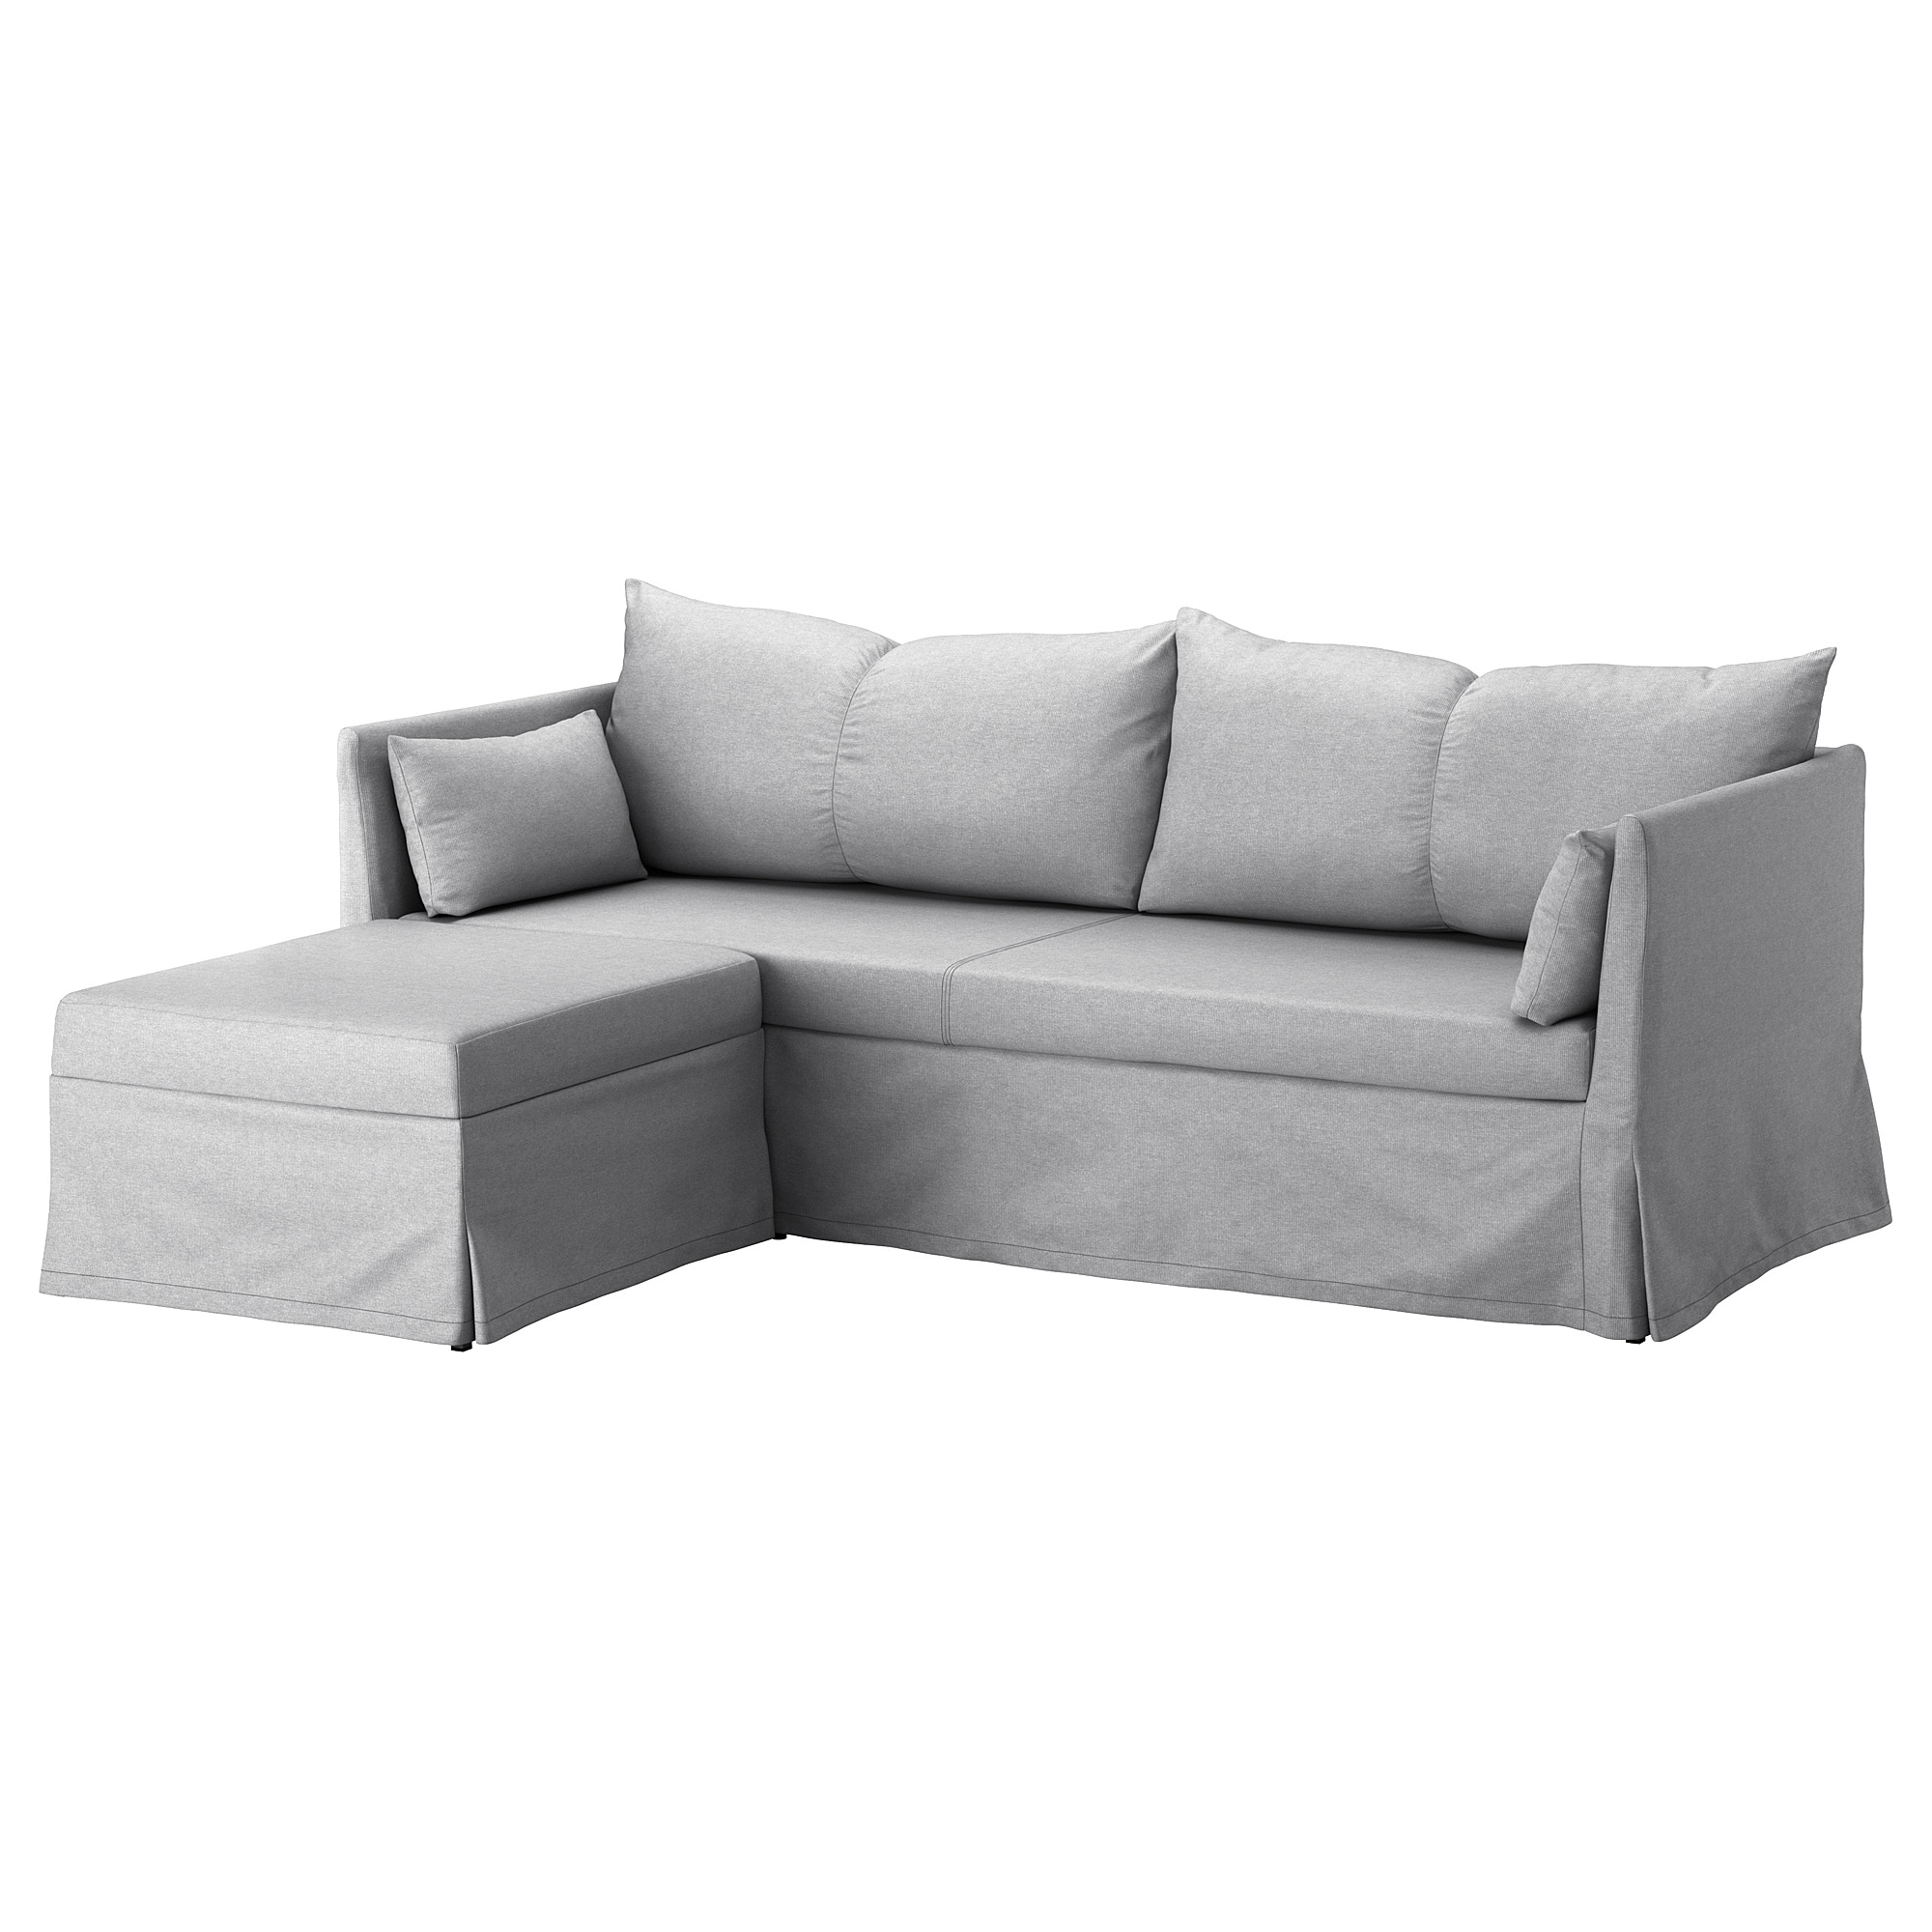 100 beddinge sofa bed slipcover futon img amazing ikea futon cover beddinge ikea beddinge